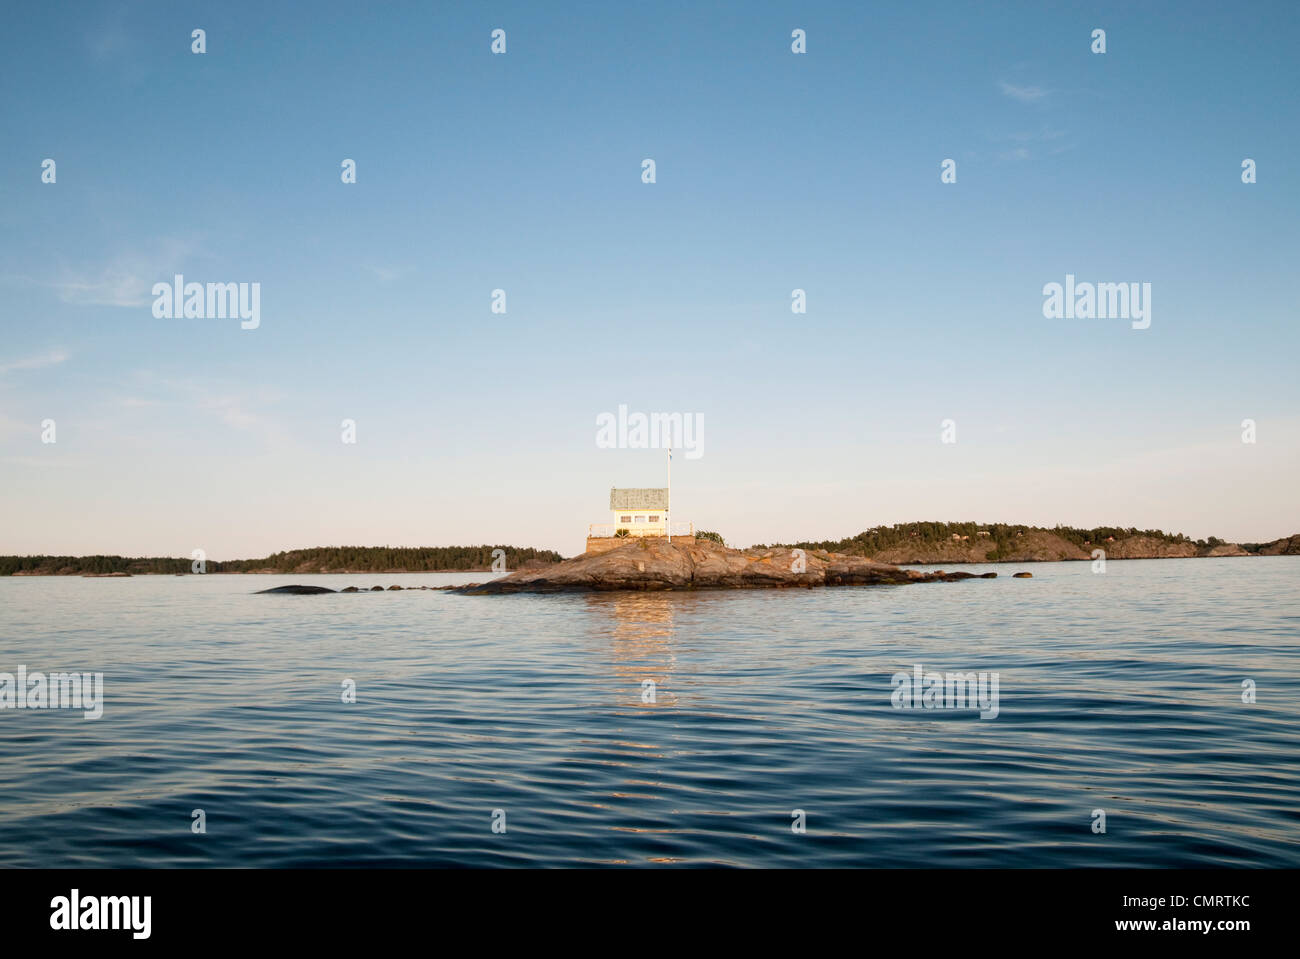 View over the archipelago - Stock Image